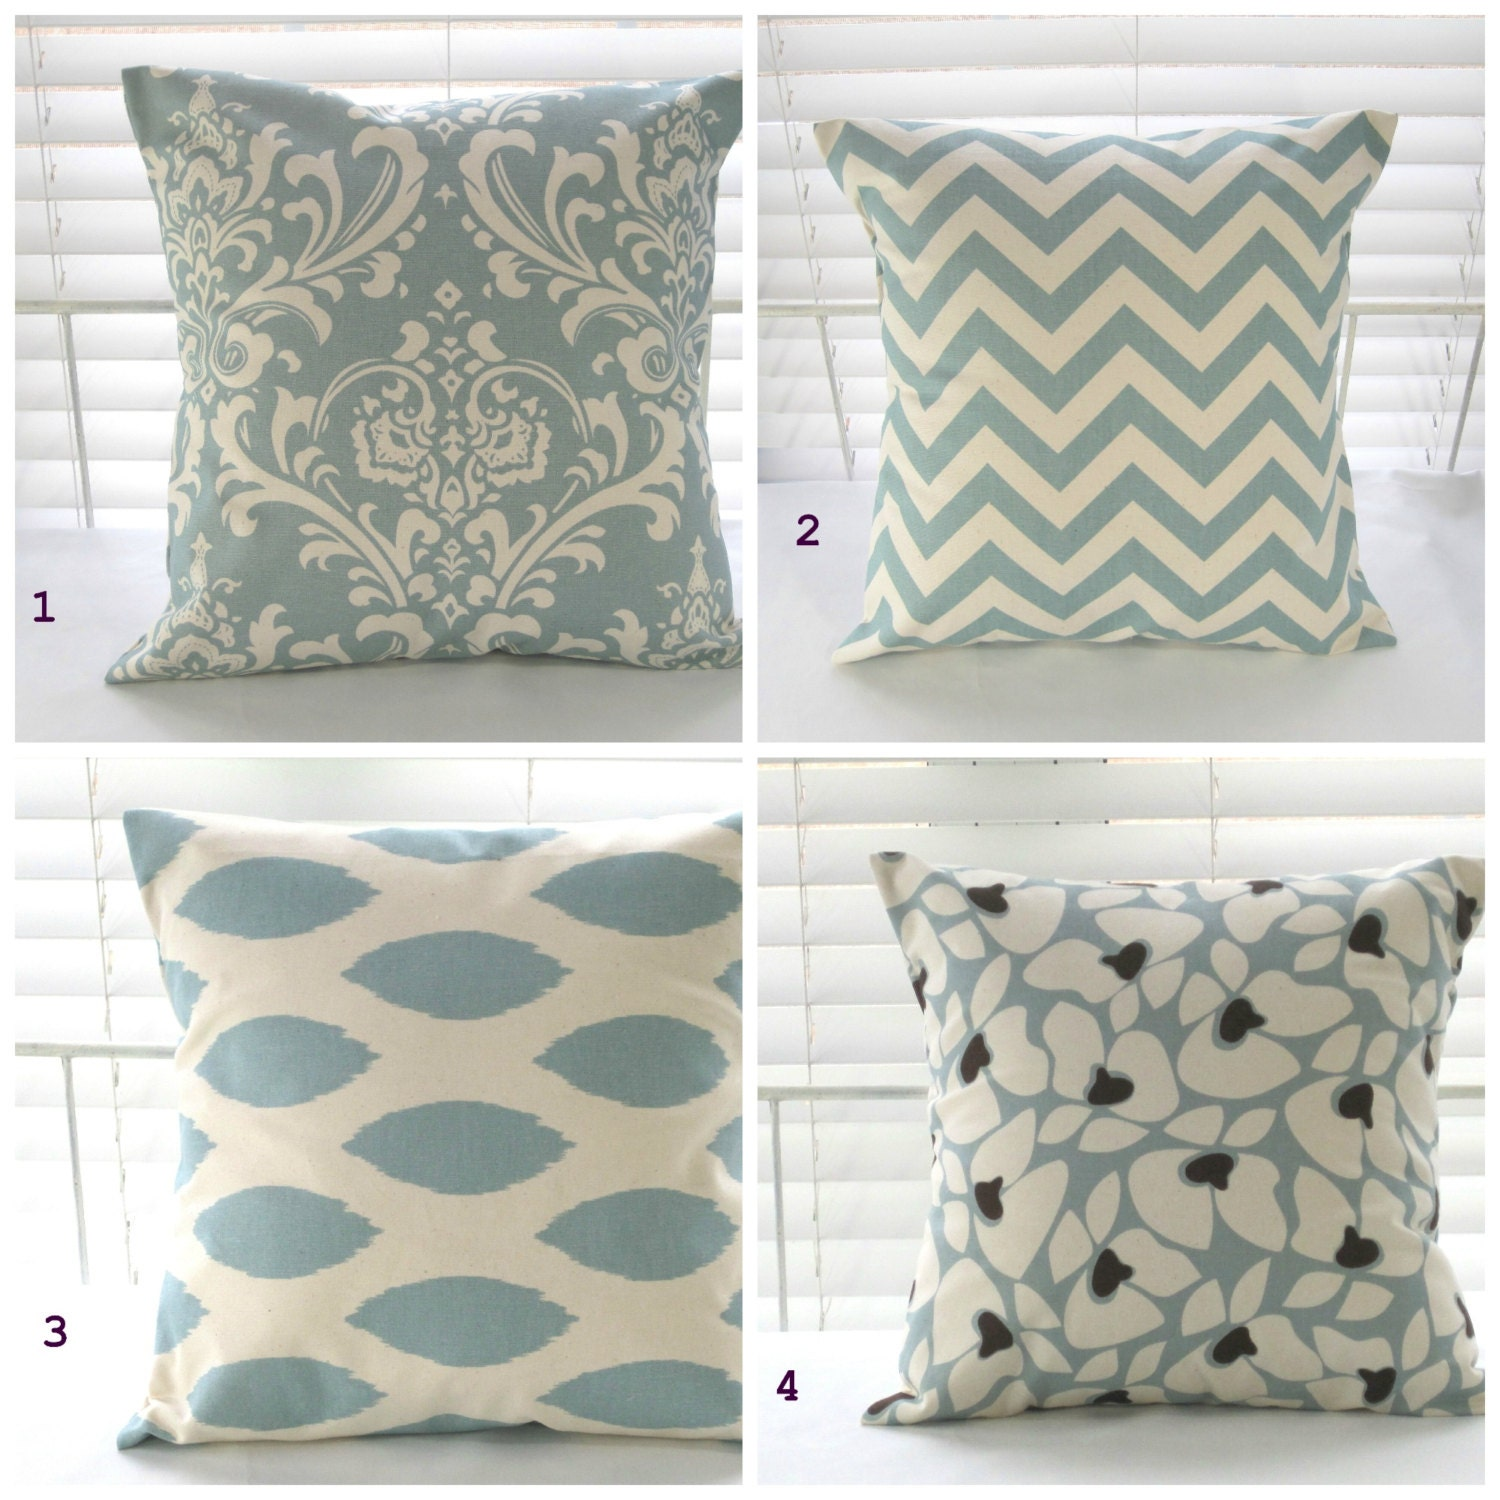 Decorative Pillows For Couch Etsy : ON SALE Pillow Cover Pillow Decorative Pillow by PillowsByJanet